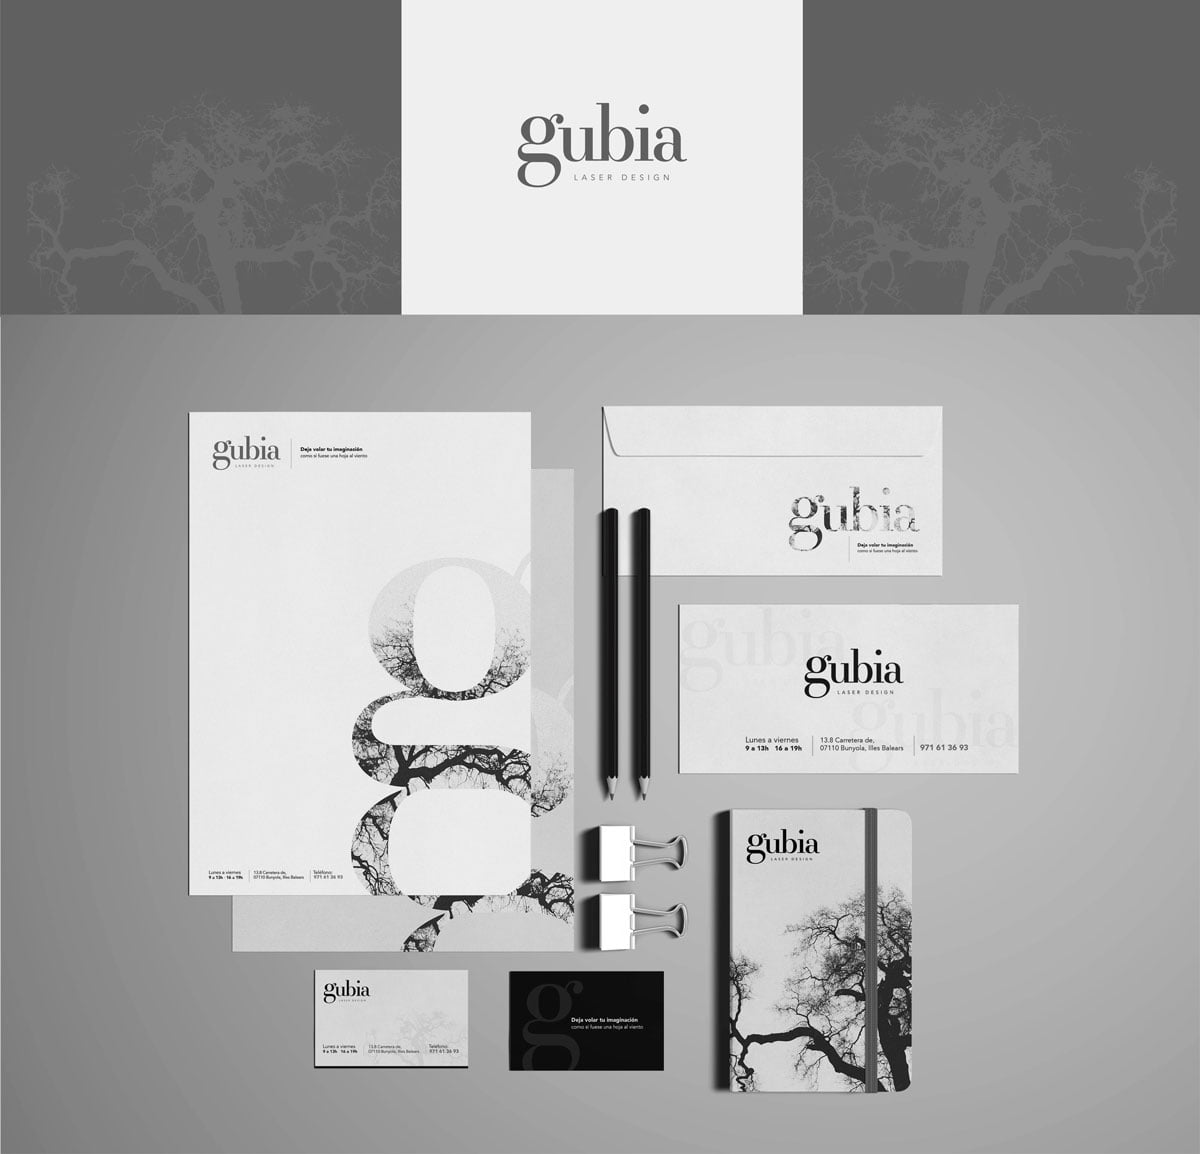 Gubia Design by Cuatroclicks